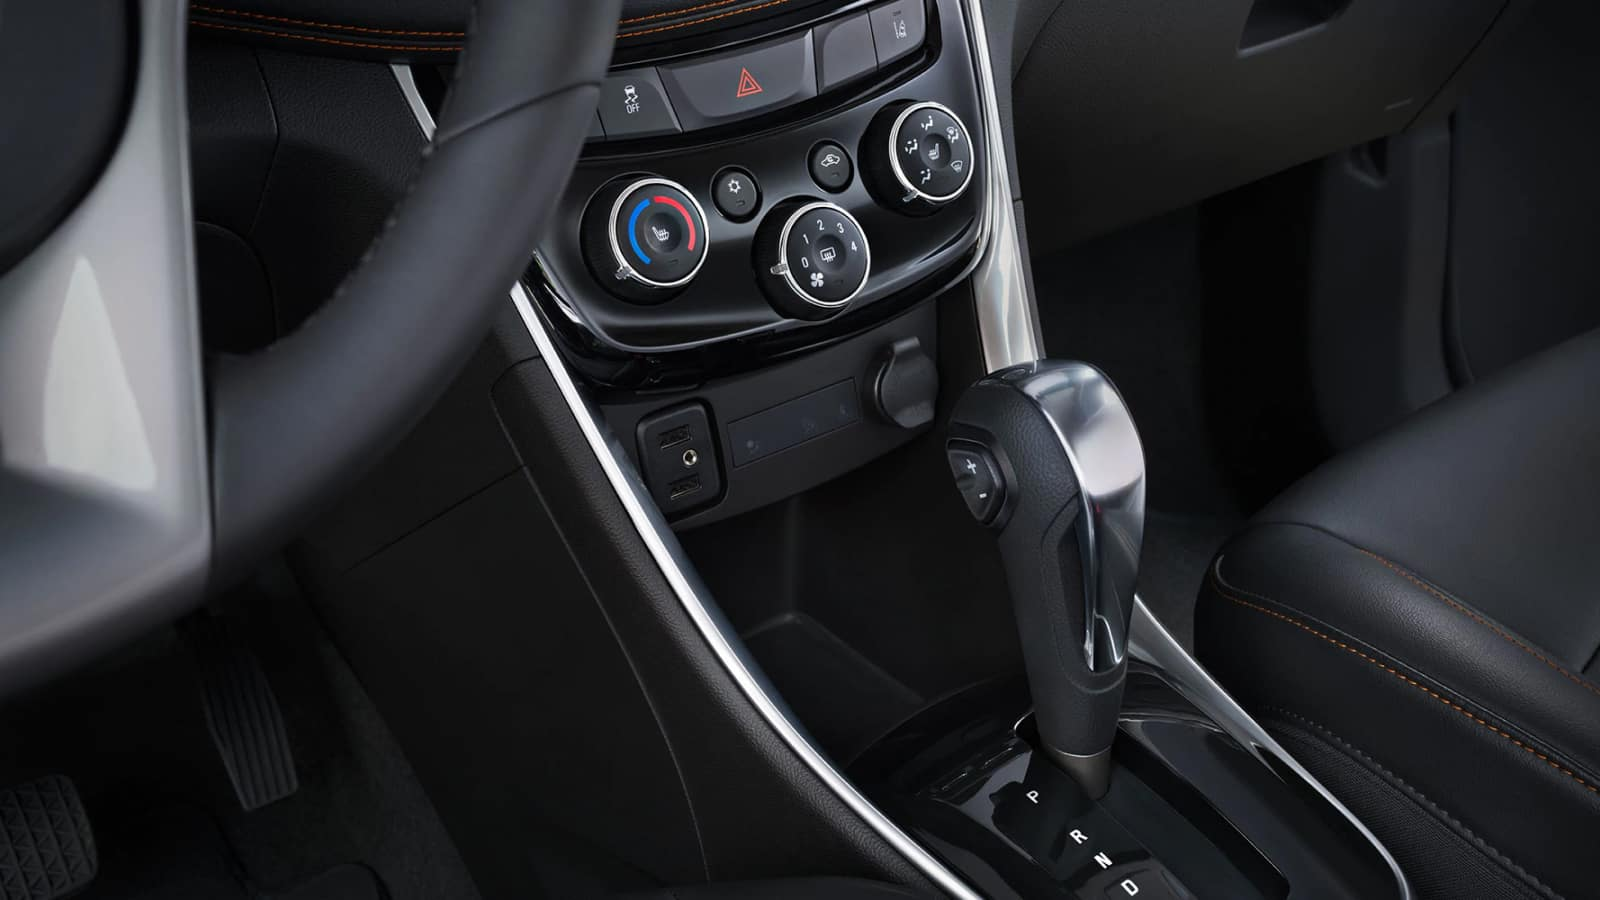 2020 Chevrolet Trax For Sale In Pensacola, FL